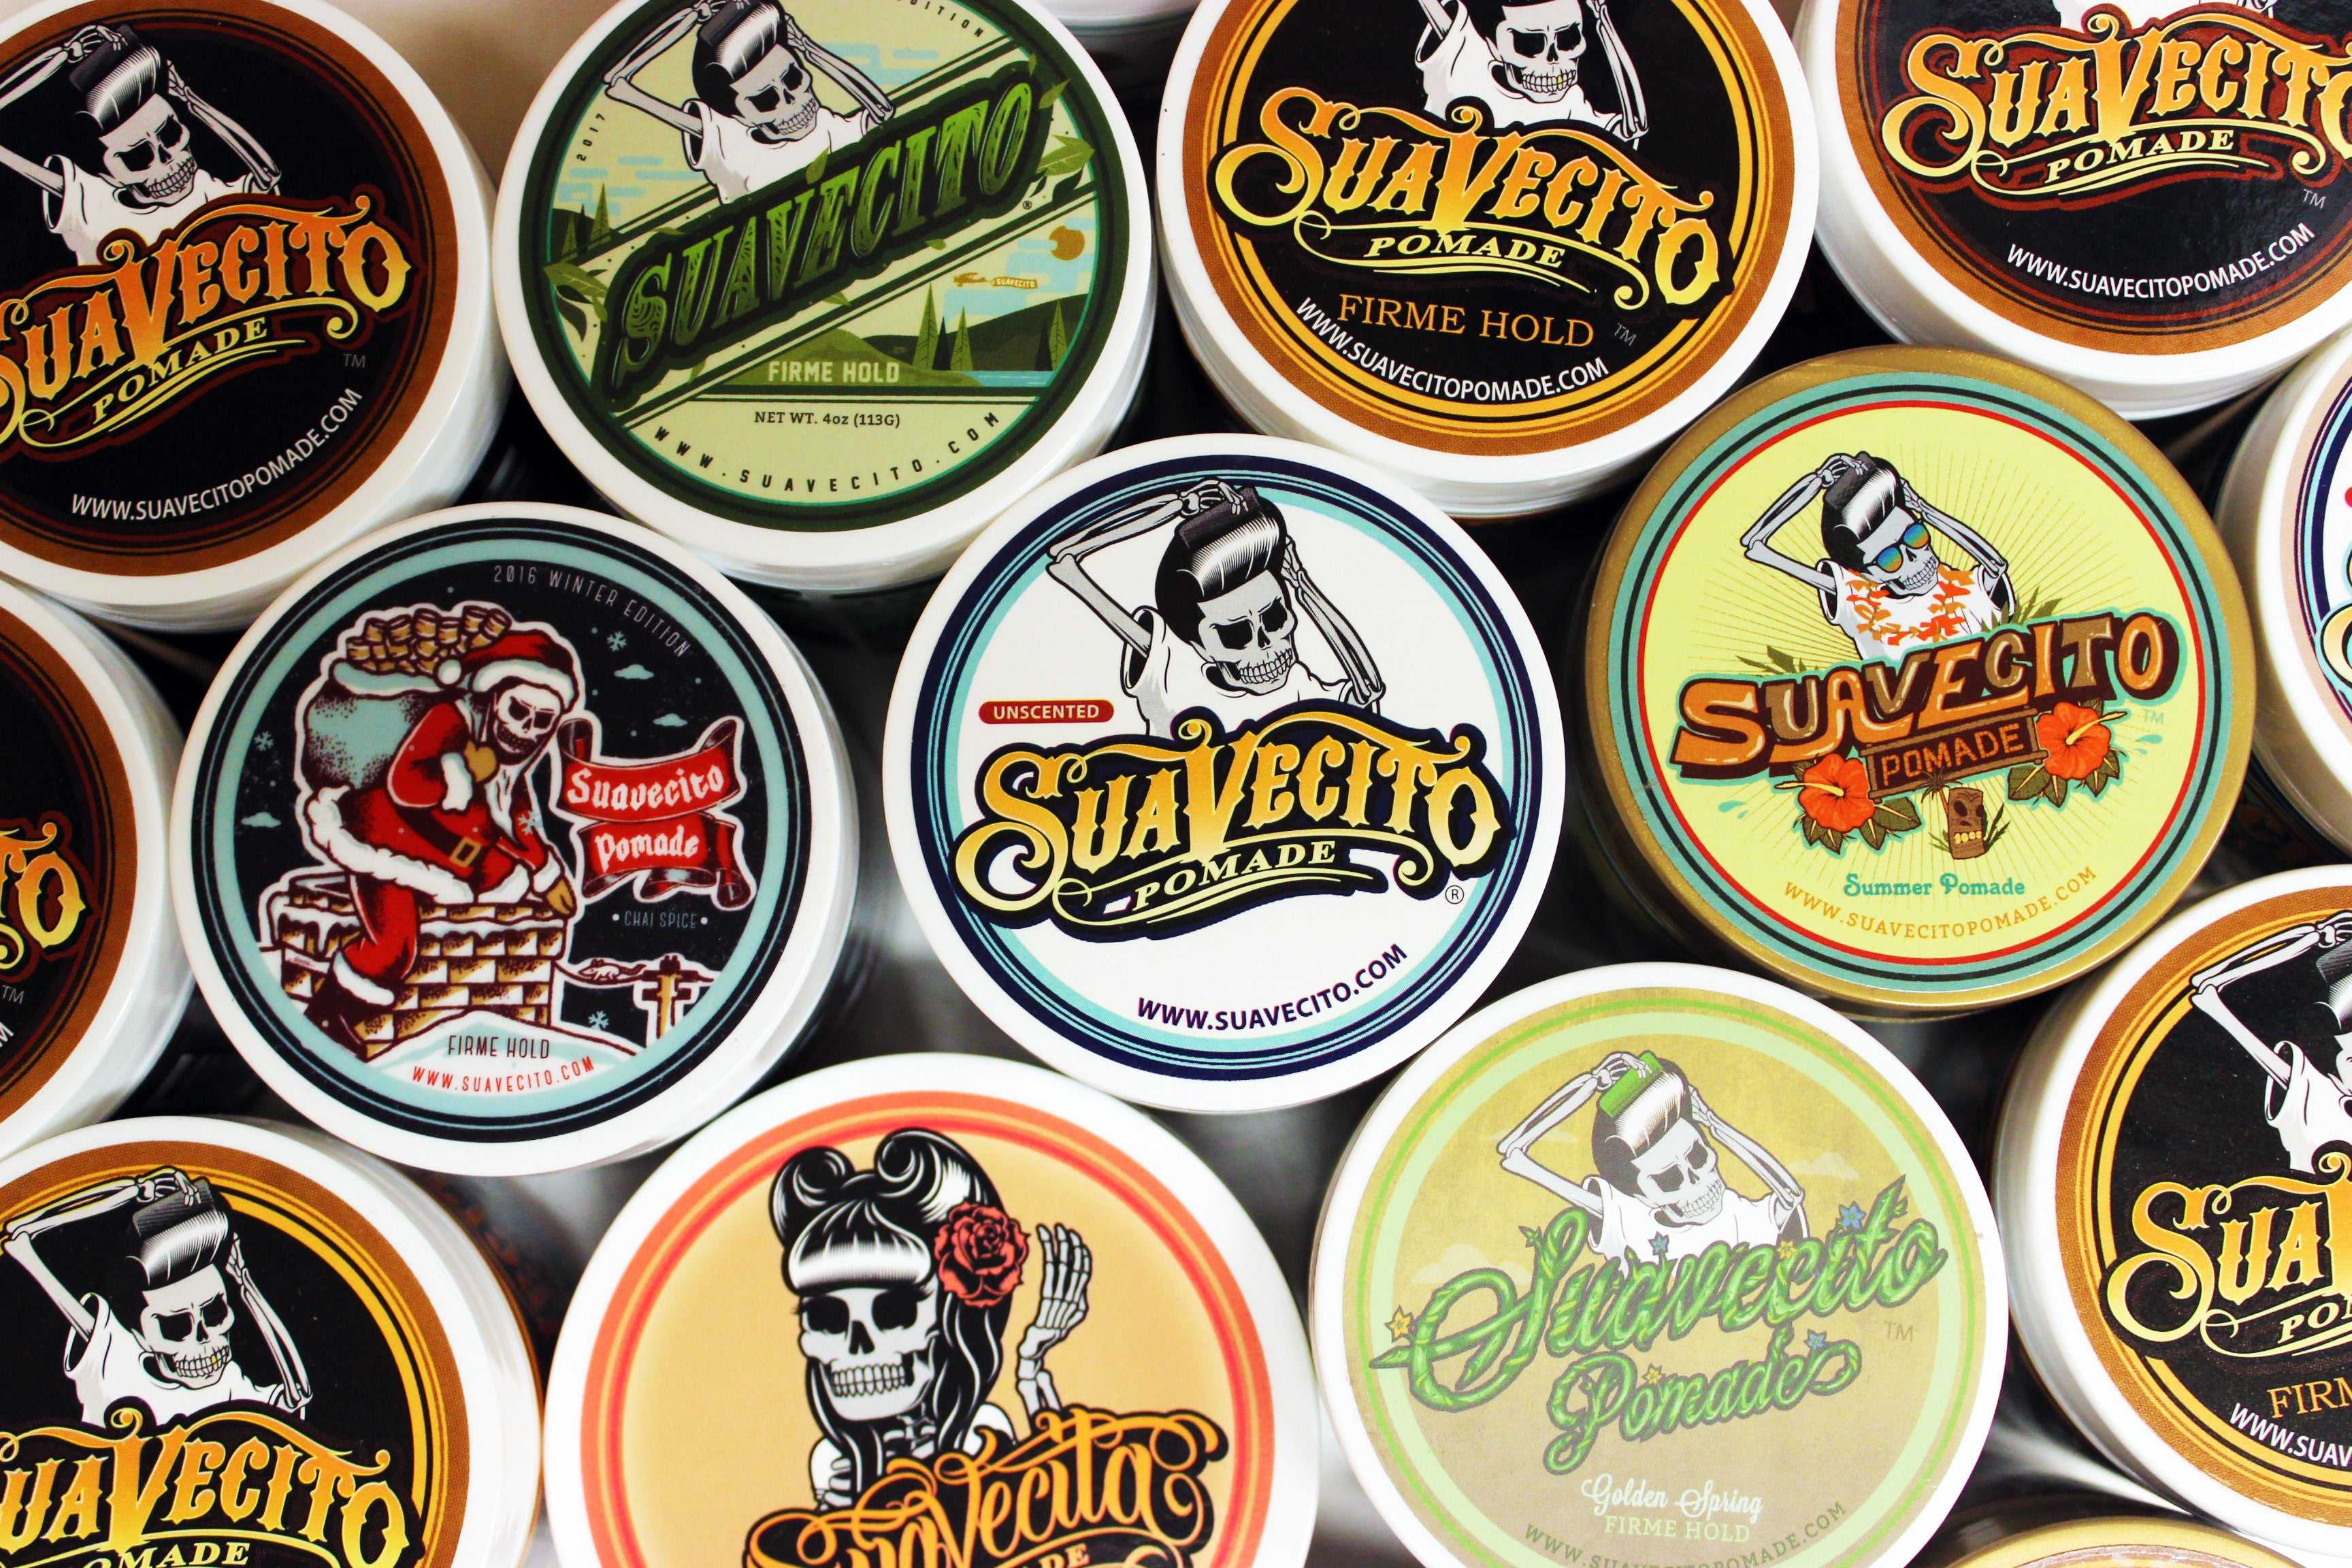 Various edition cans of suavecito pomade